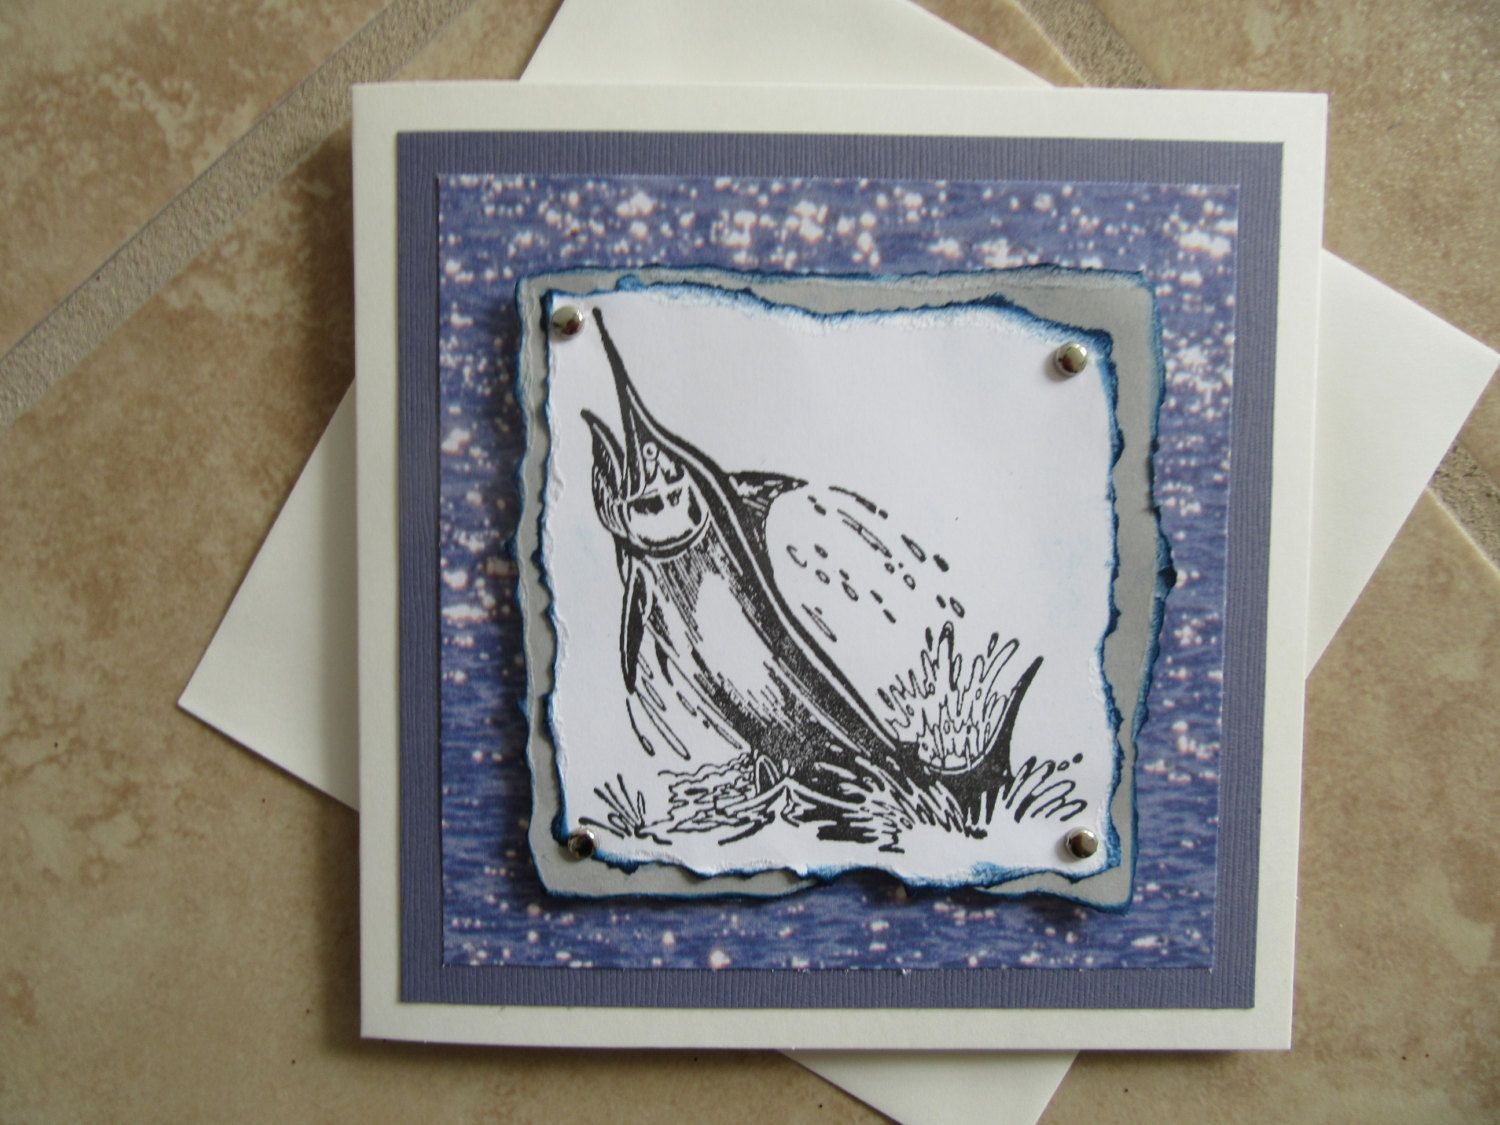 All occasion marlin fish greeting card by patspapercrafts on etsy all occasion marlin fish greeting card by patspapercrafts on etsy kristyandbryce Choice Image